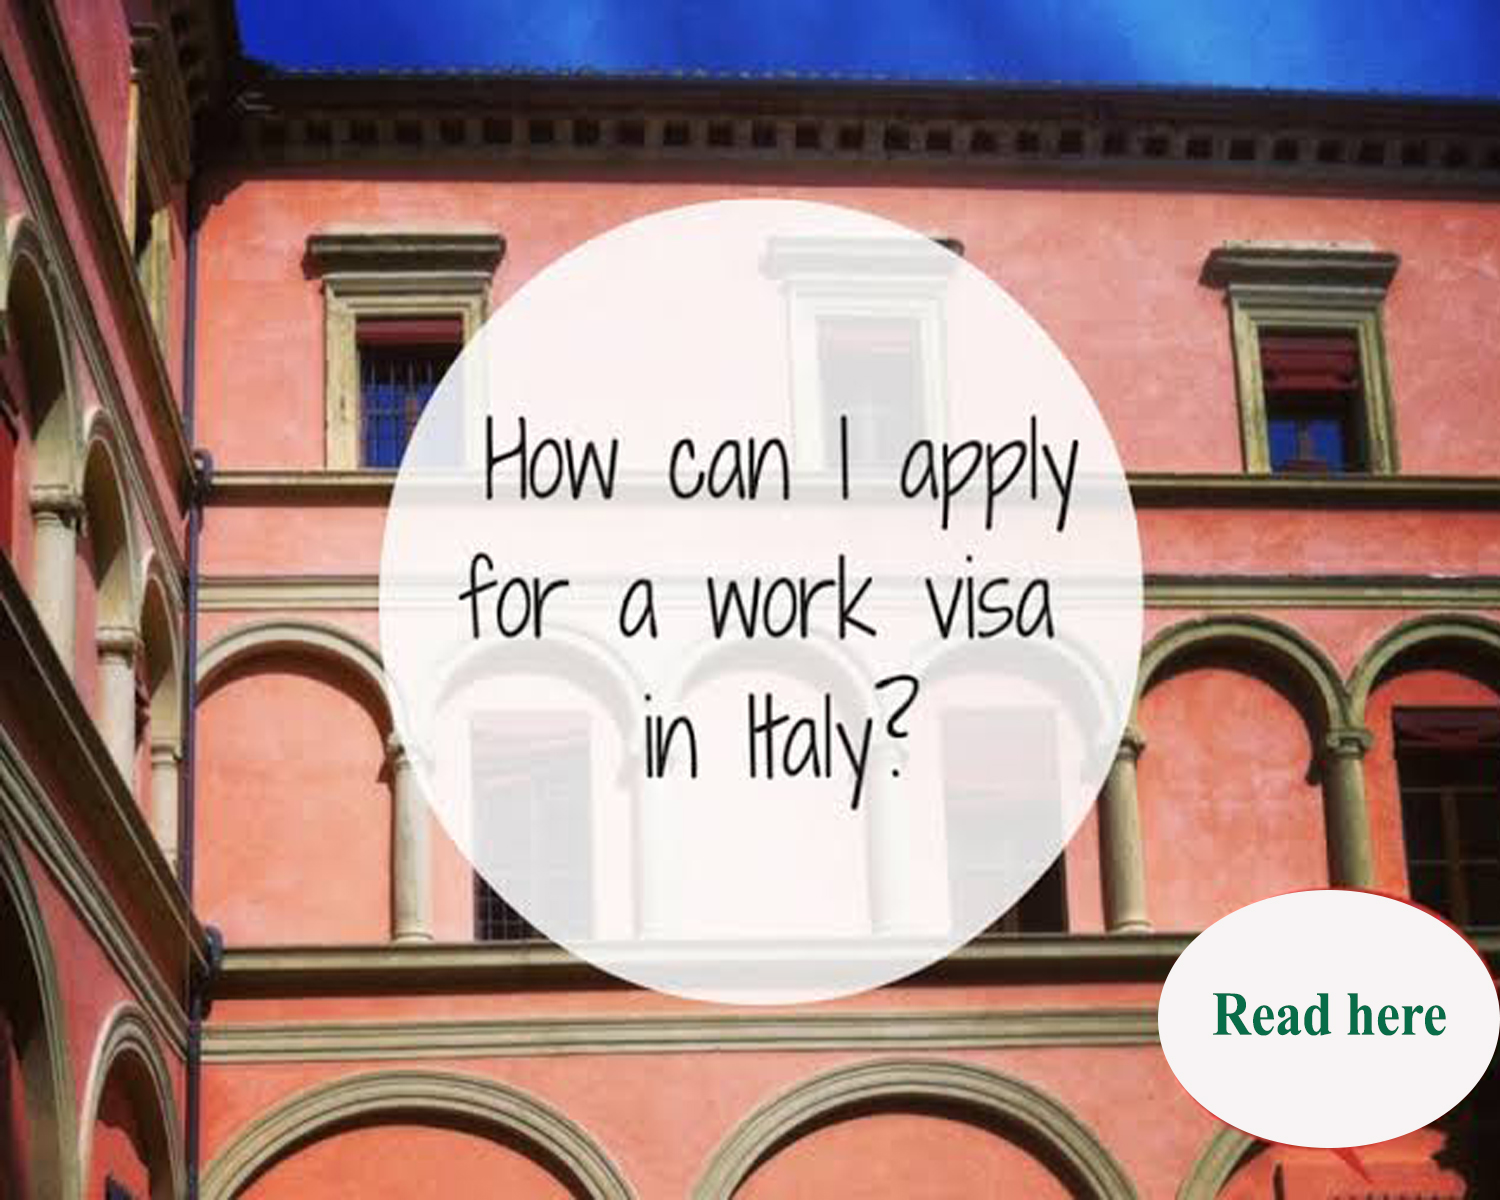 How to Apply for a Work Visa in Italy?